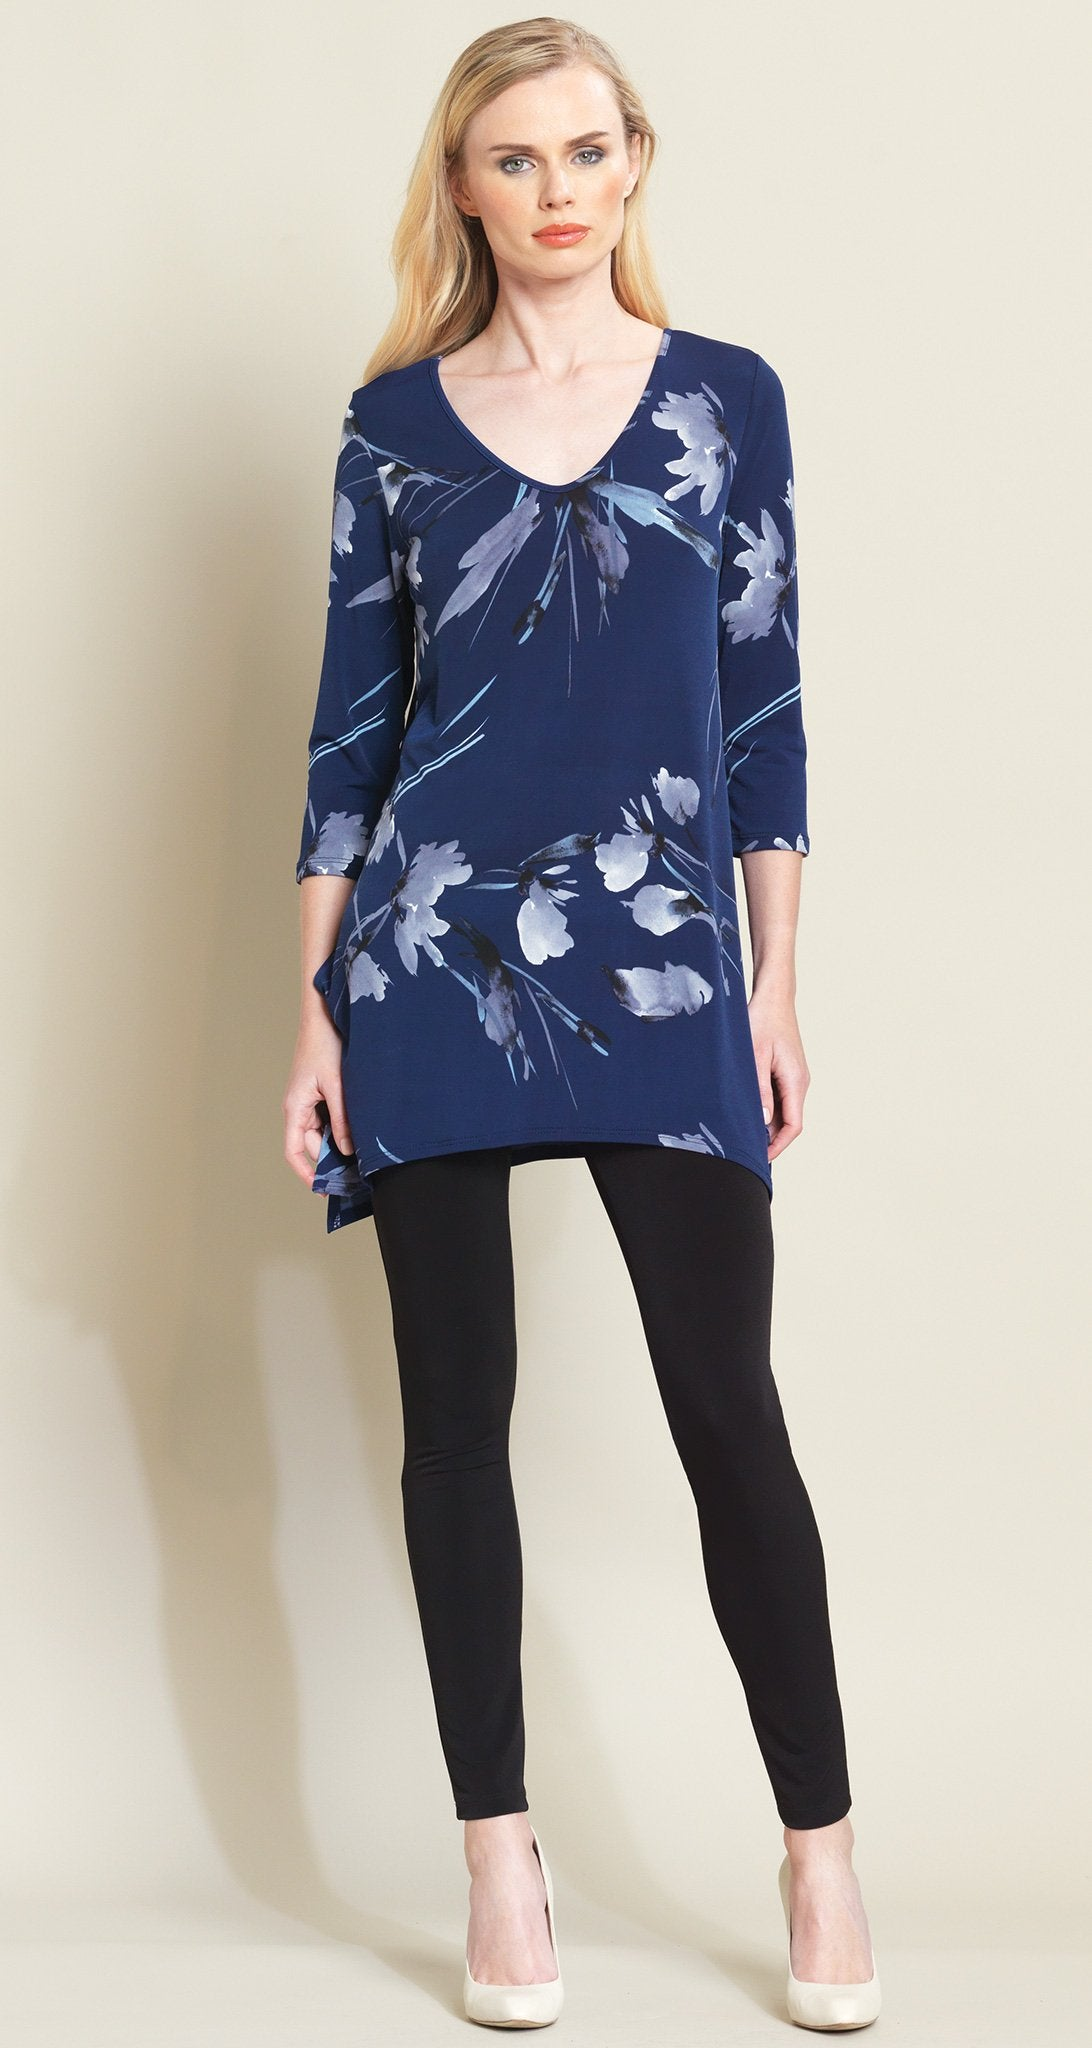 Floral Leaves Side Vent Tunic - Navy/Grey - Clara Sunwoo